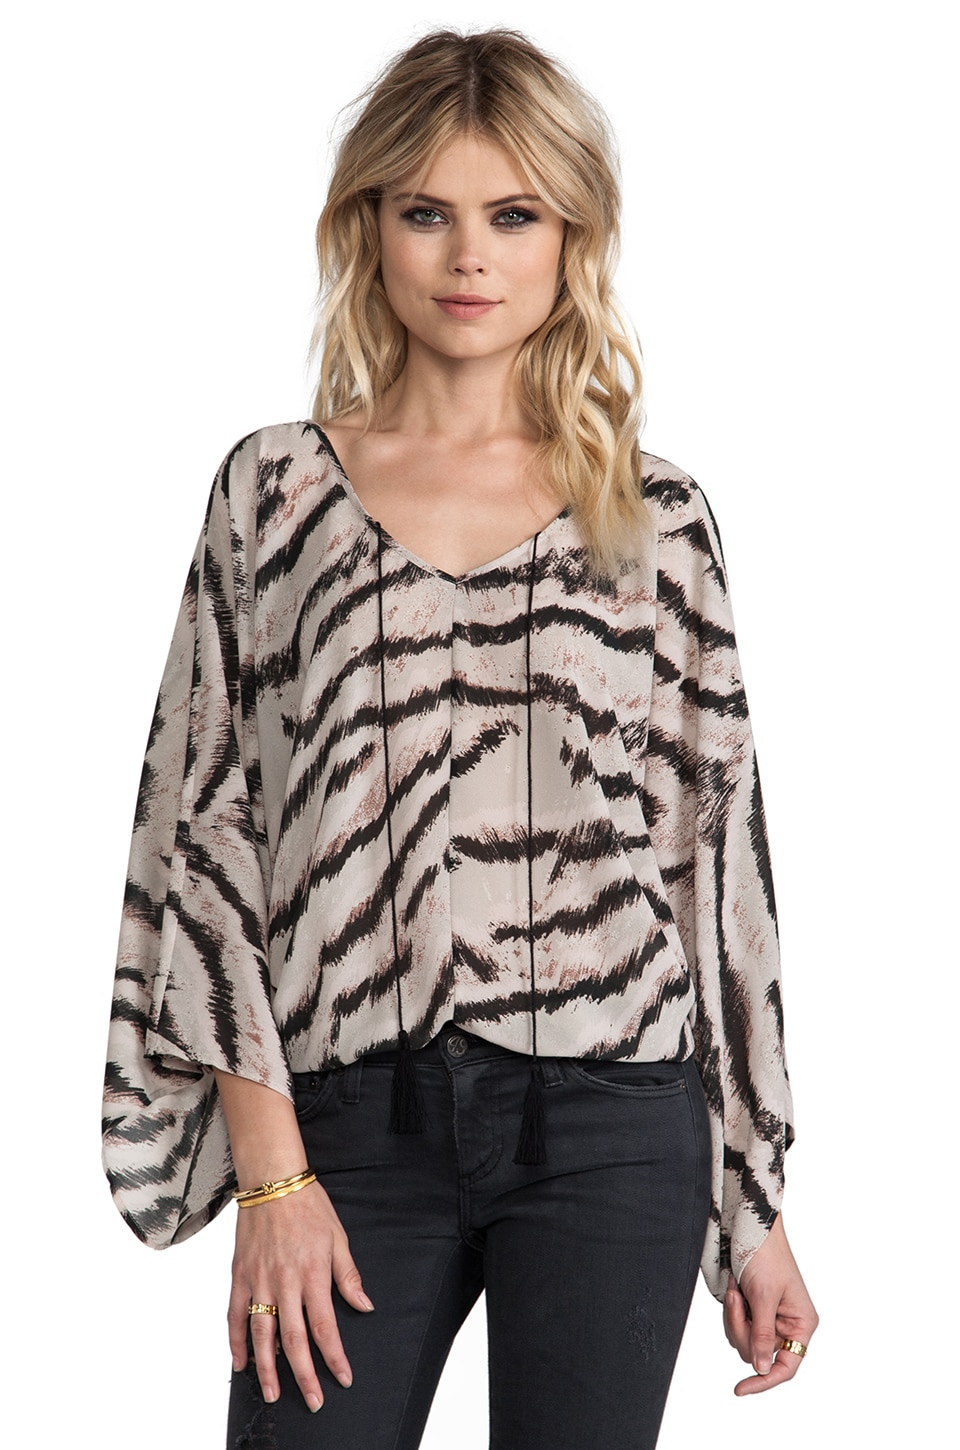 Sanctuary Pocahoncho Sweater in Zebra Print